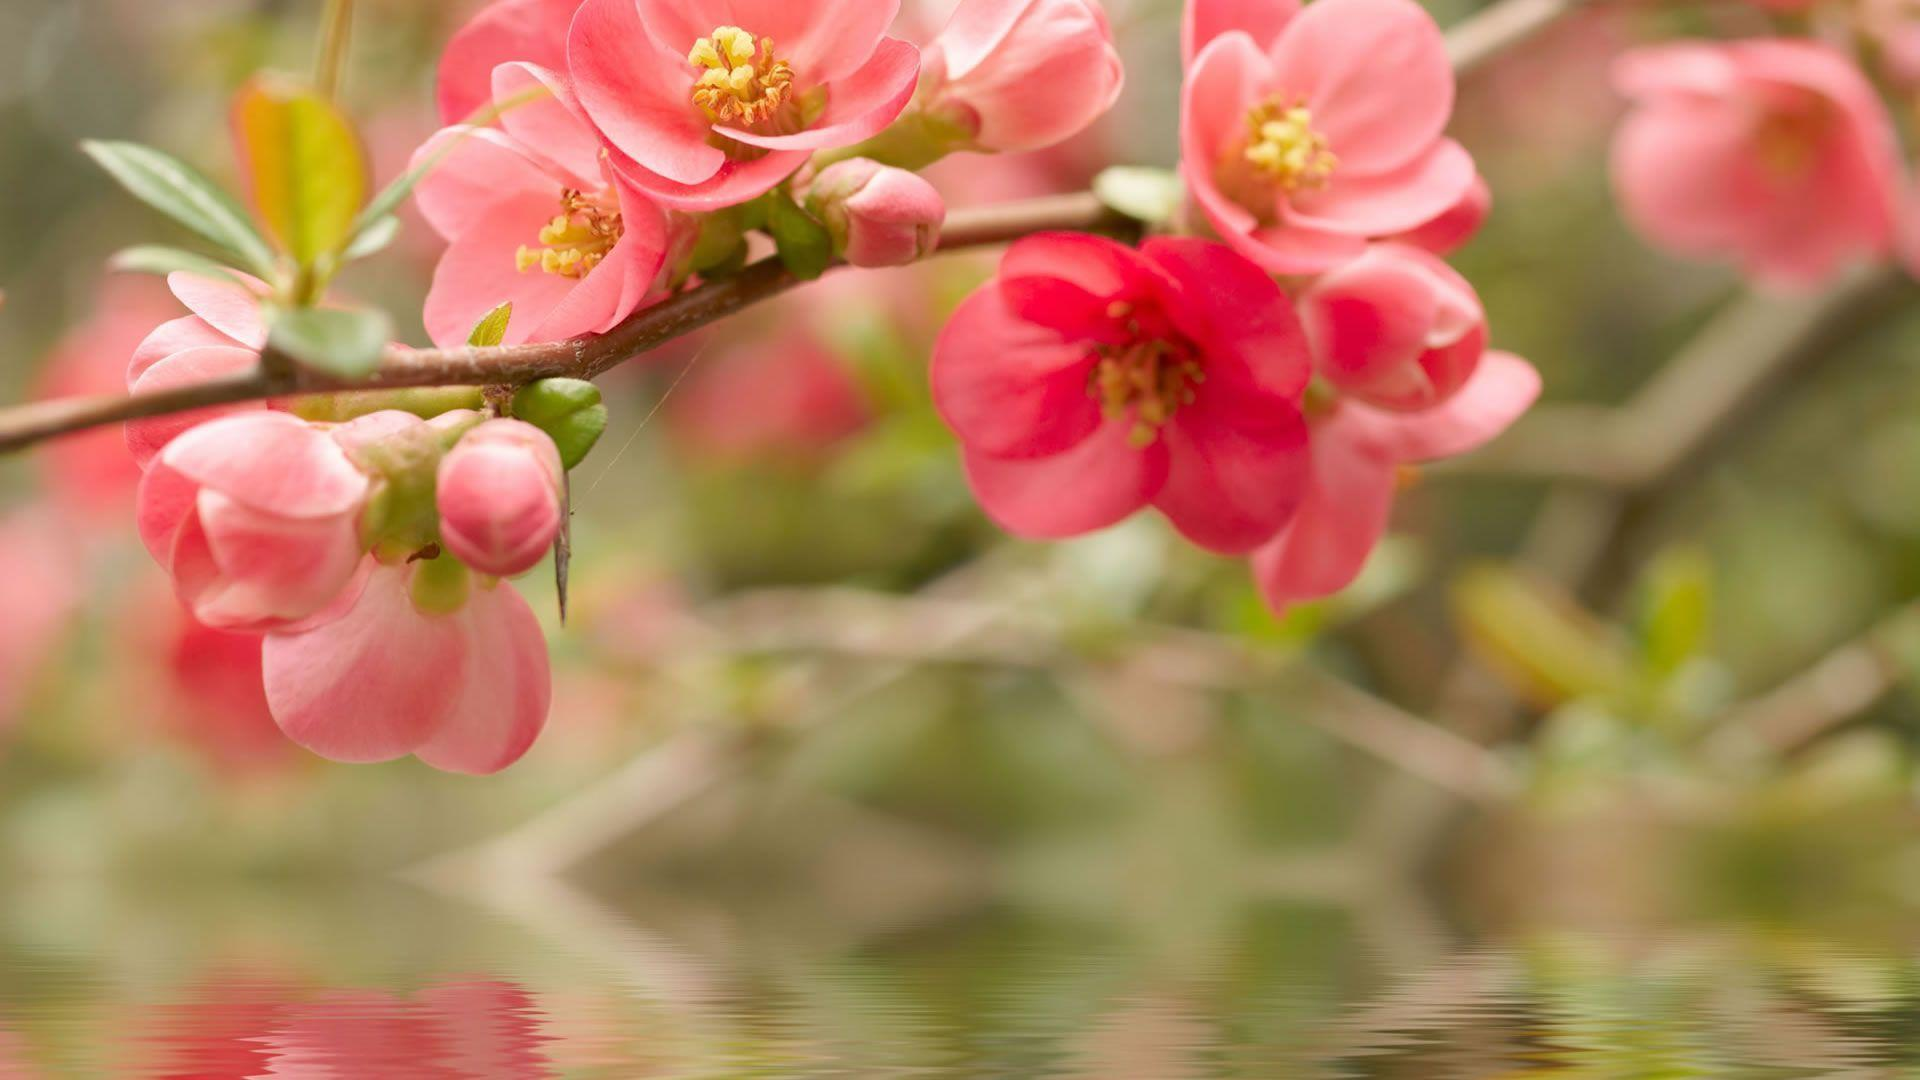 Pictures Of Beautiful Flowers Wallpapers - Wallpaper Cave